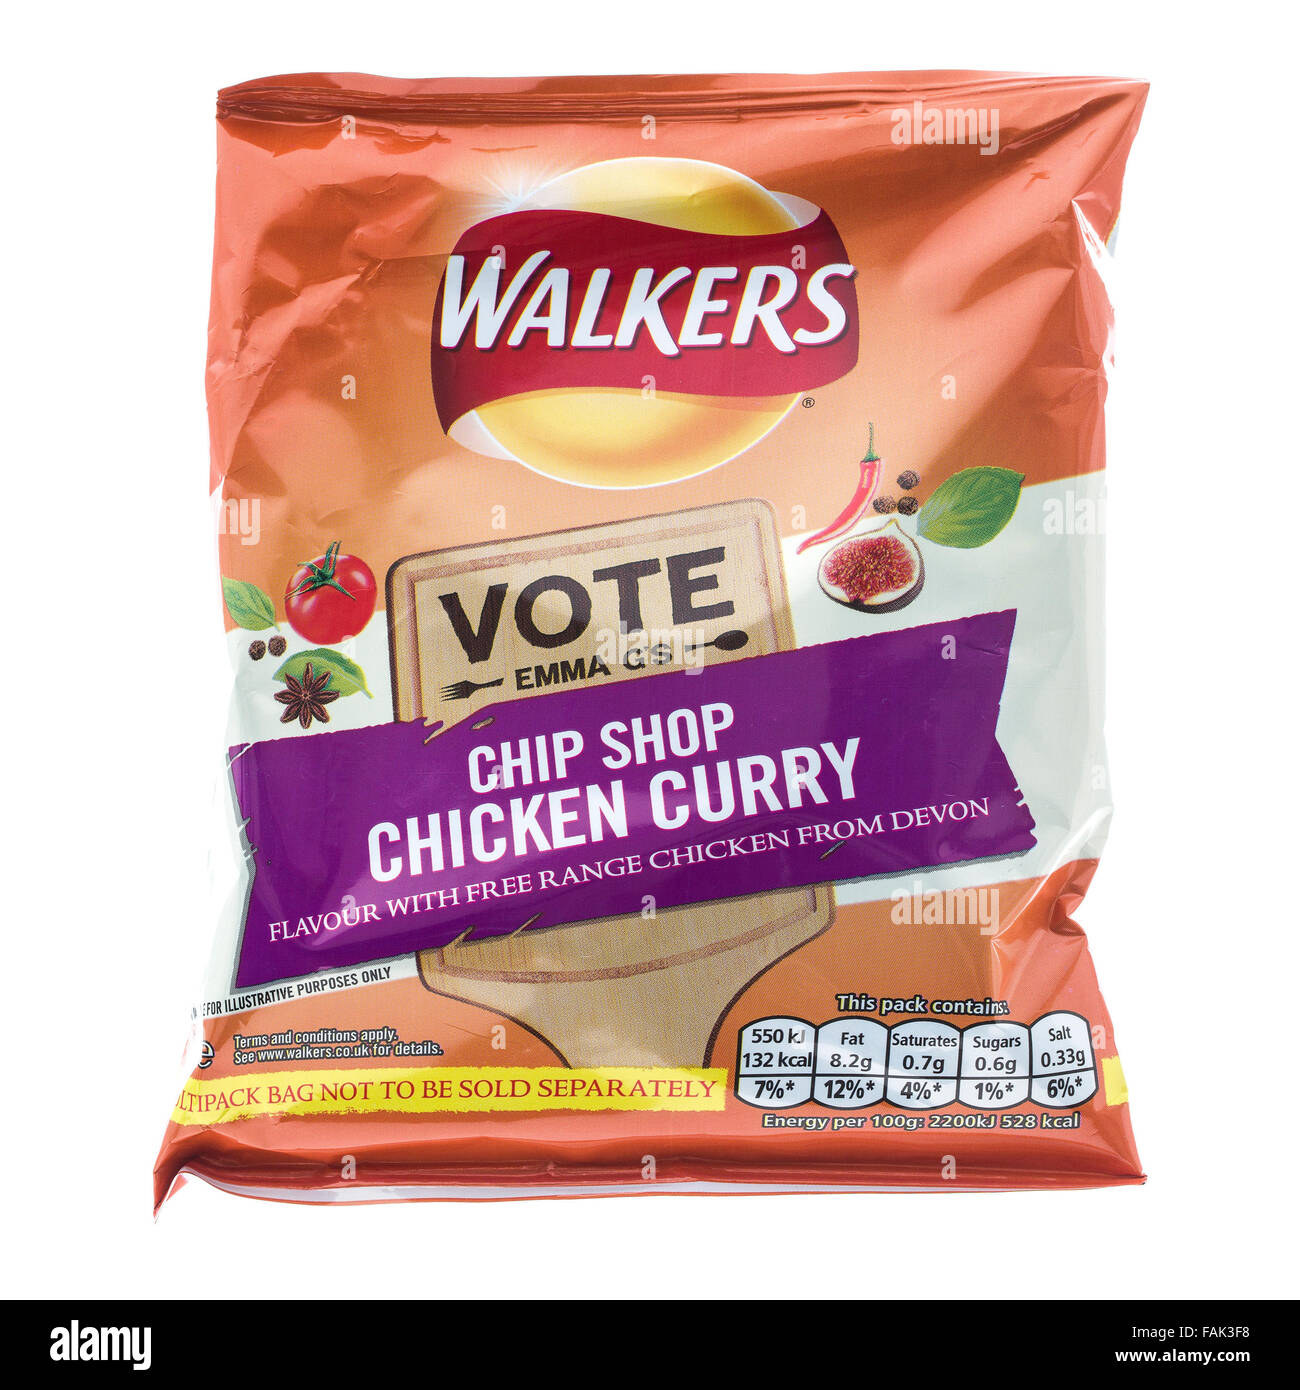 A Bag of Walkers Chip Shop Chicken Curry Flavour crisps (new 2014 packaging) isolated on a white - Stock Image